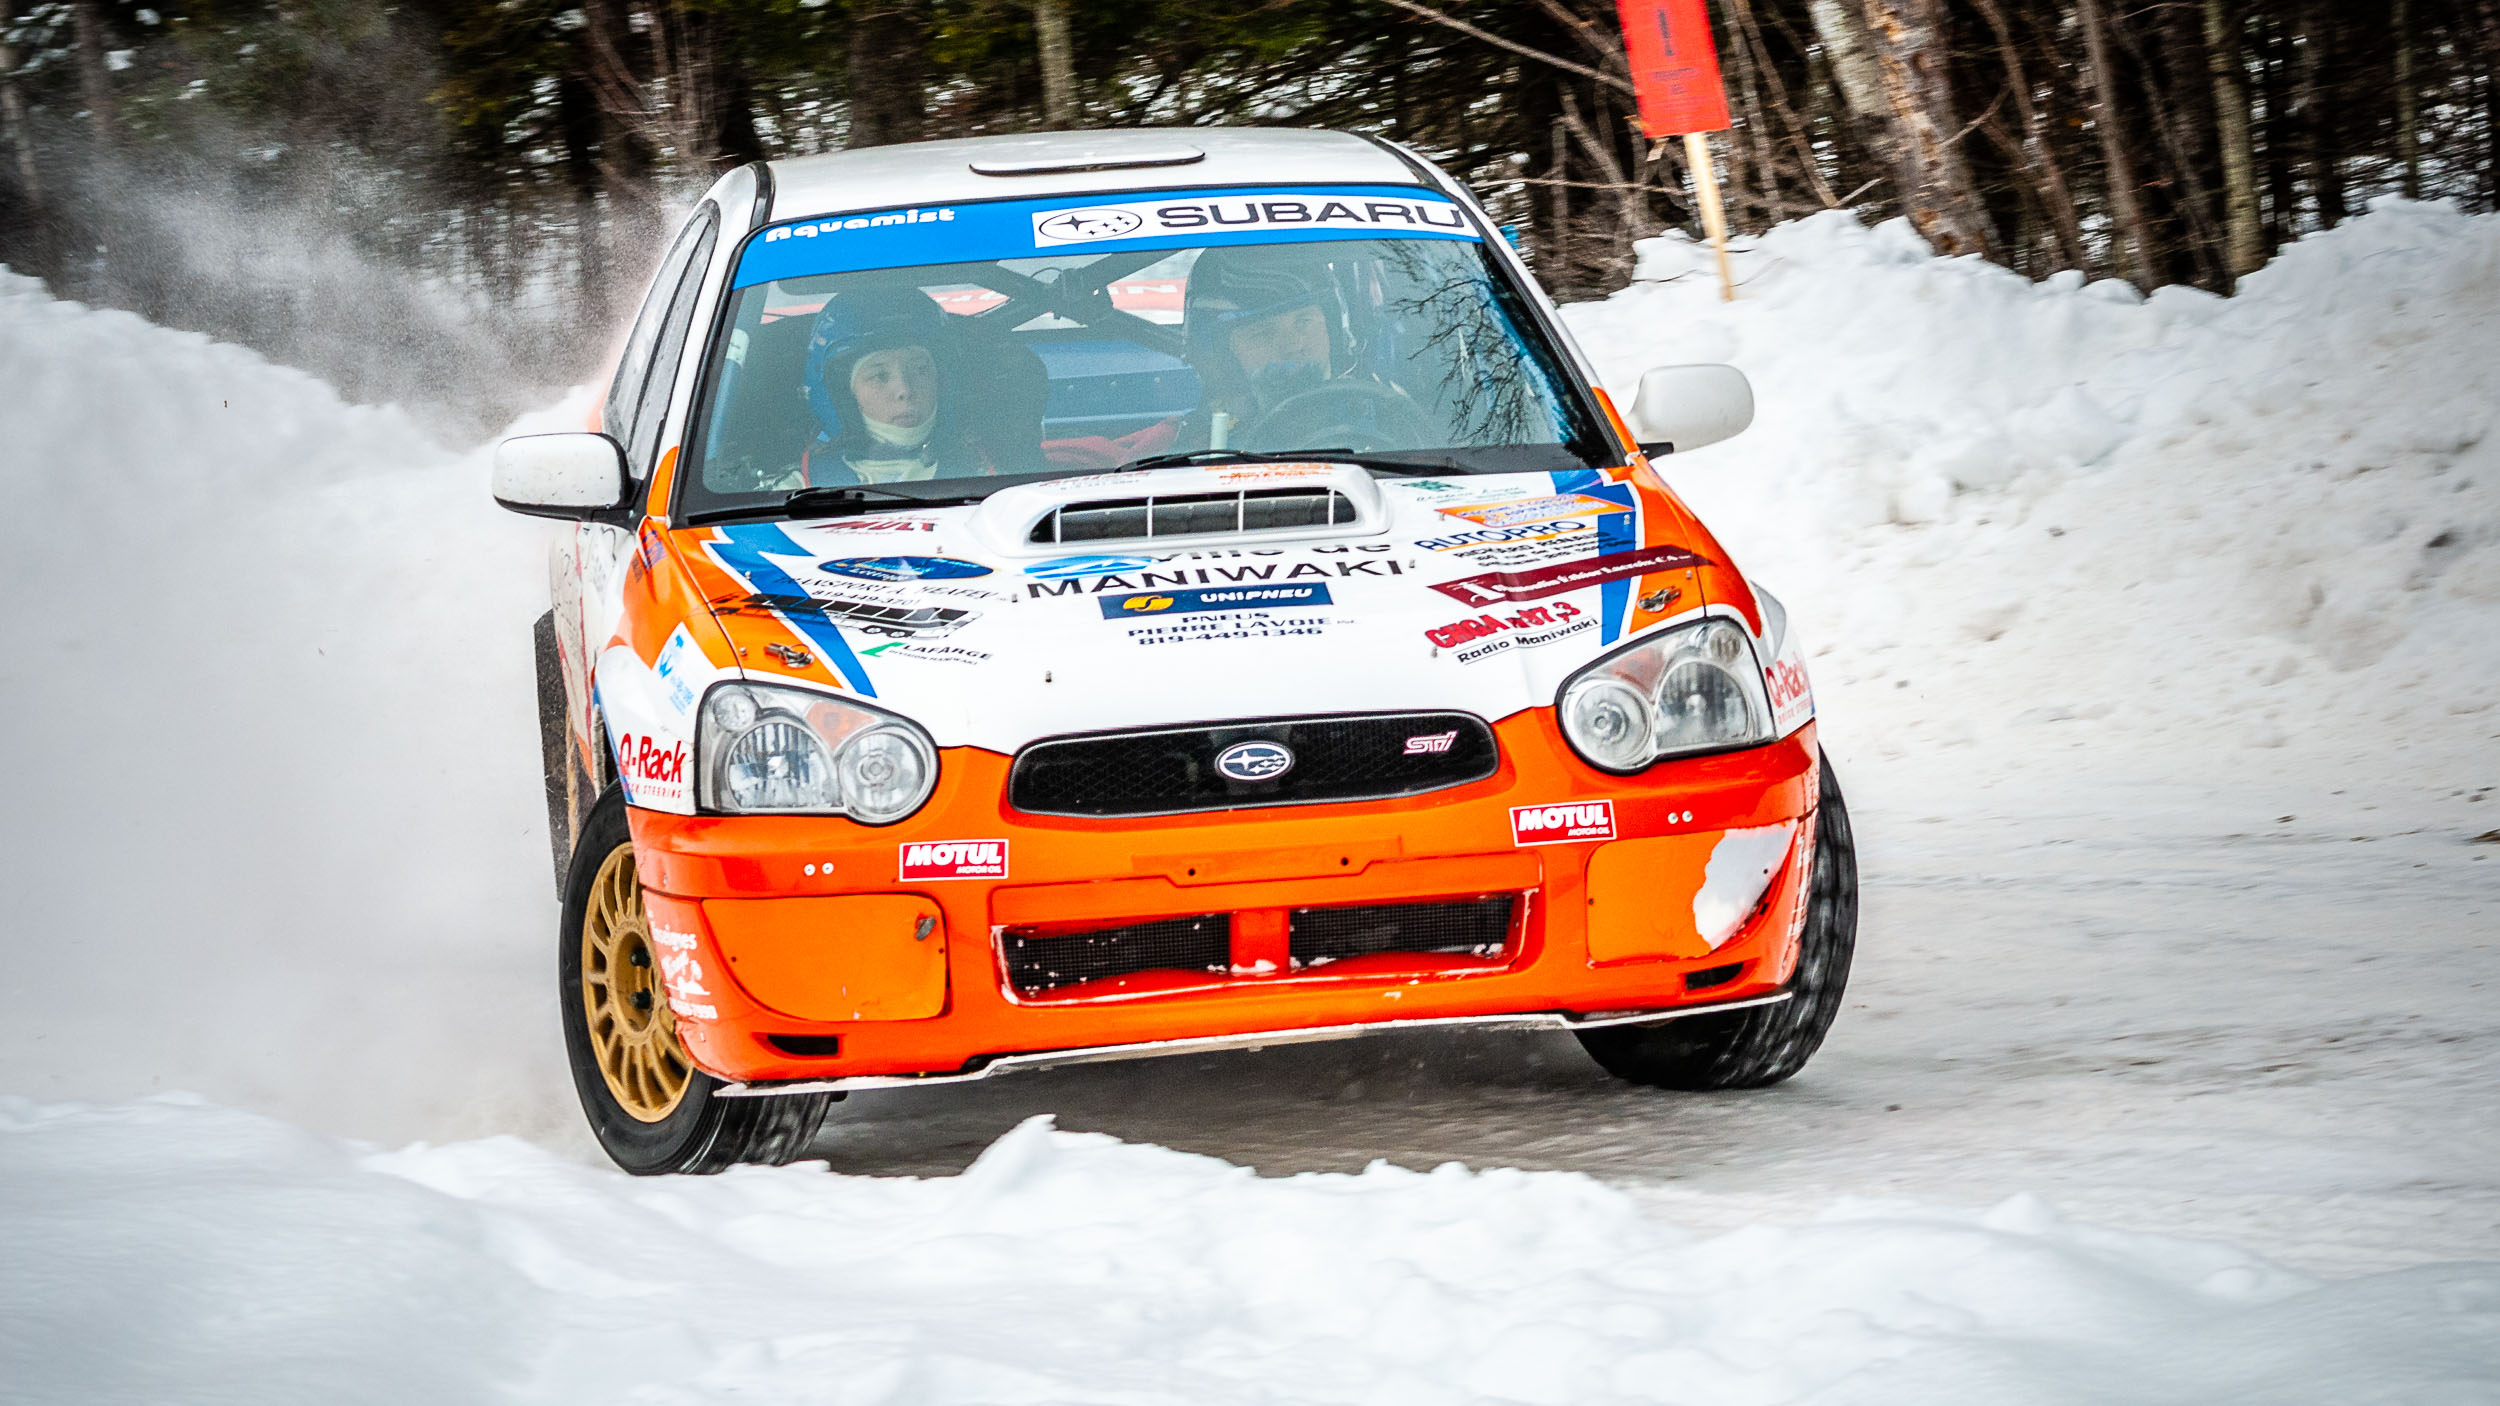 Perce-Neige Rally, Maniwaki, Quebec, 2008